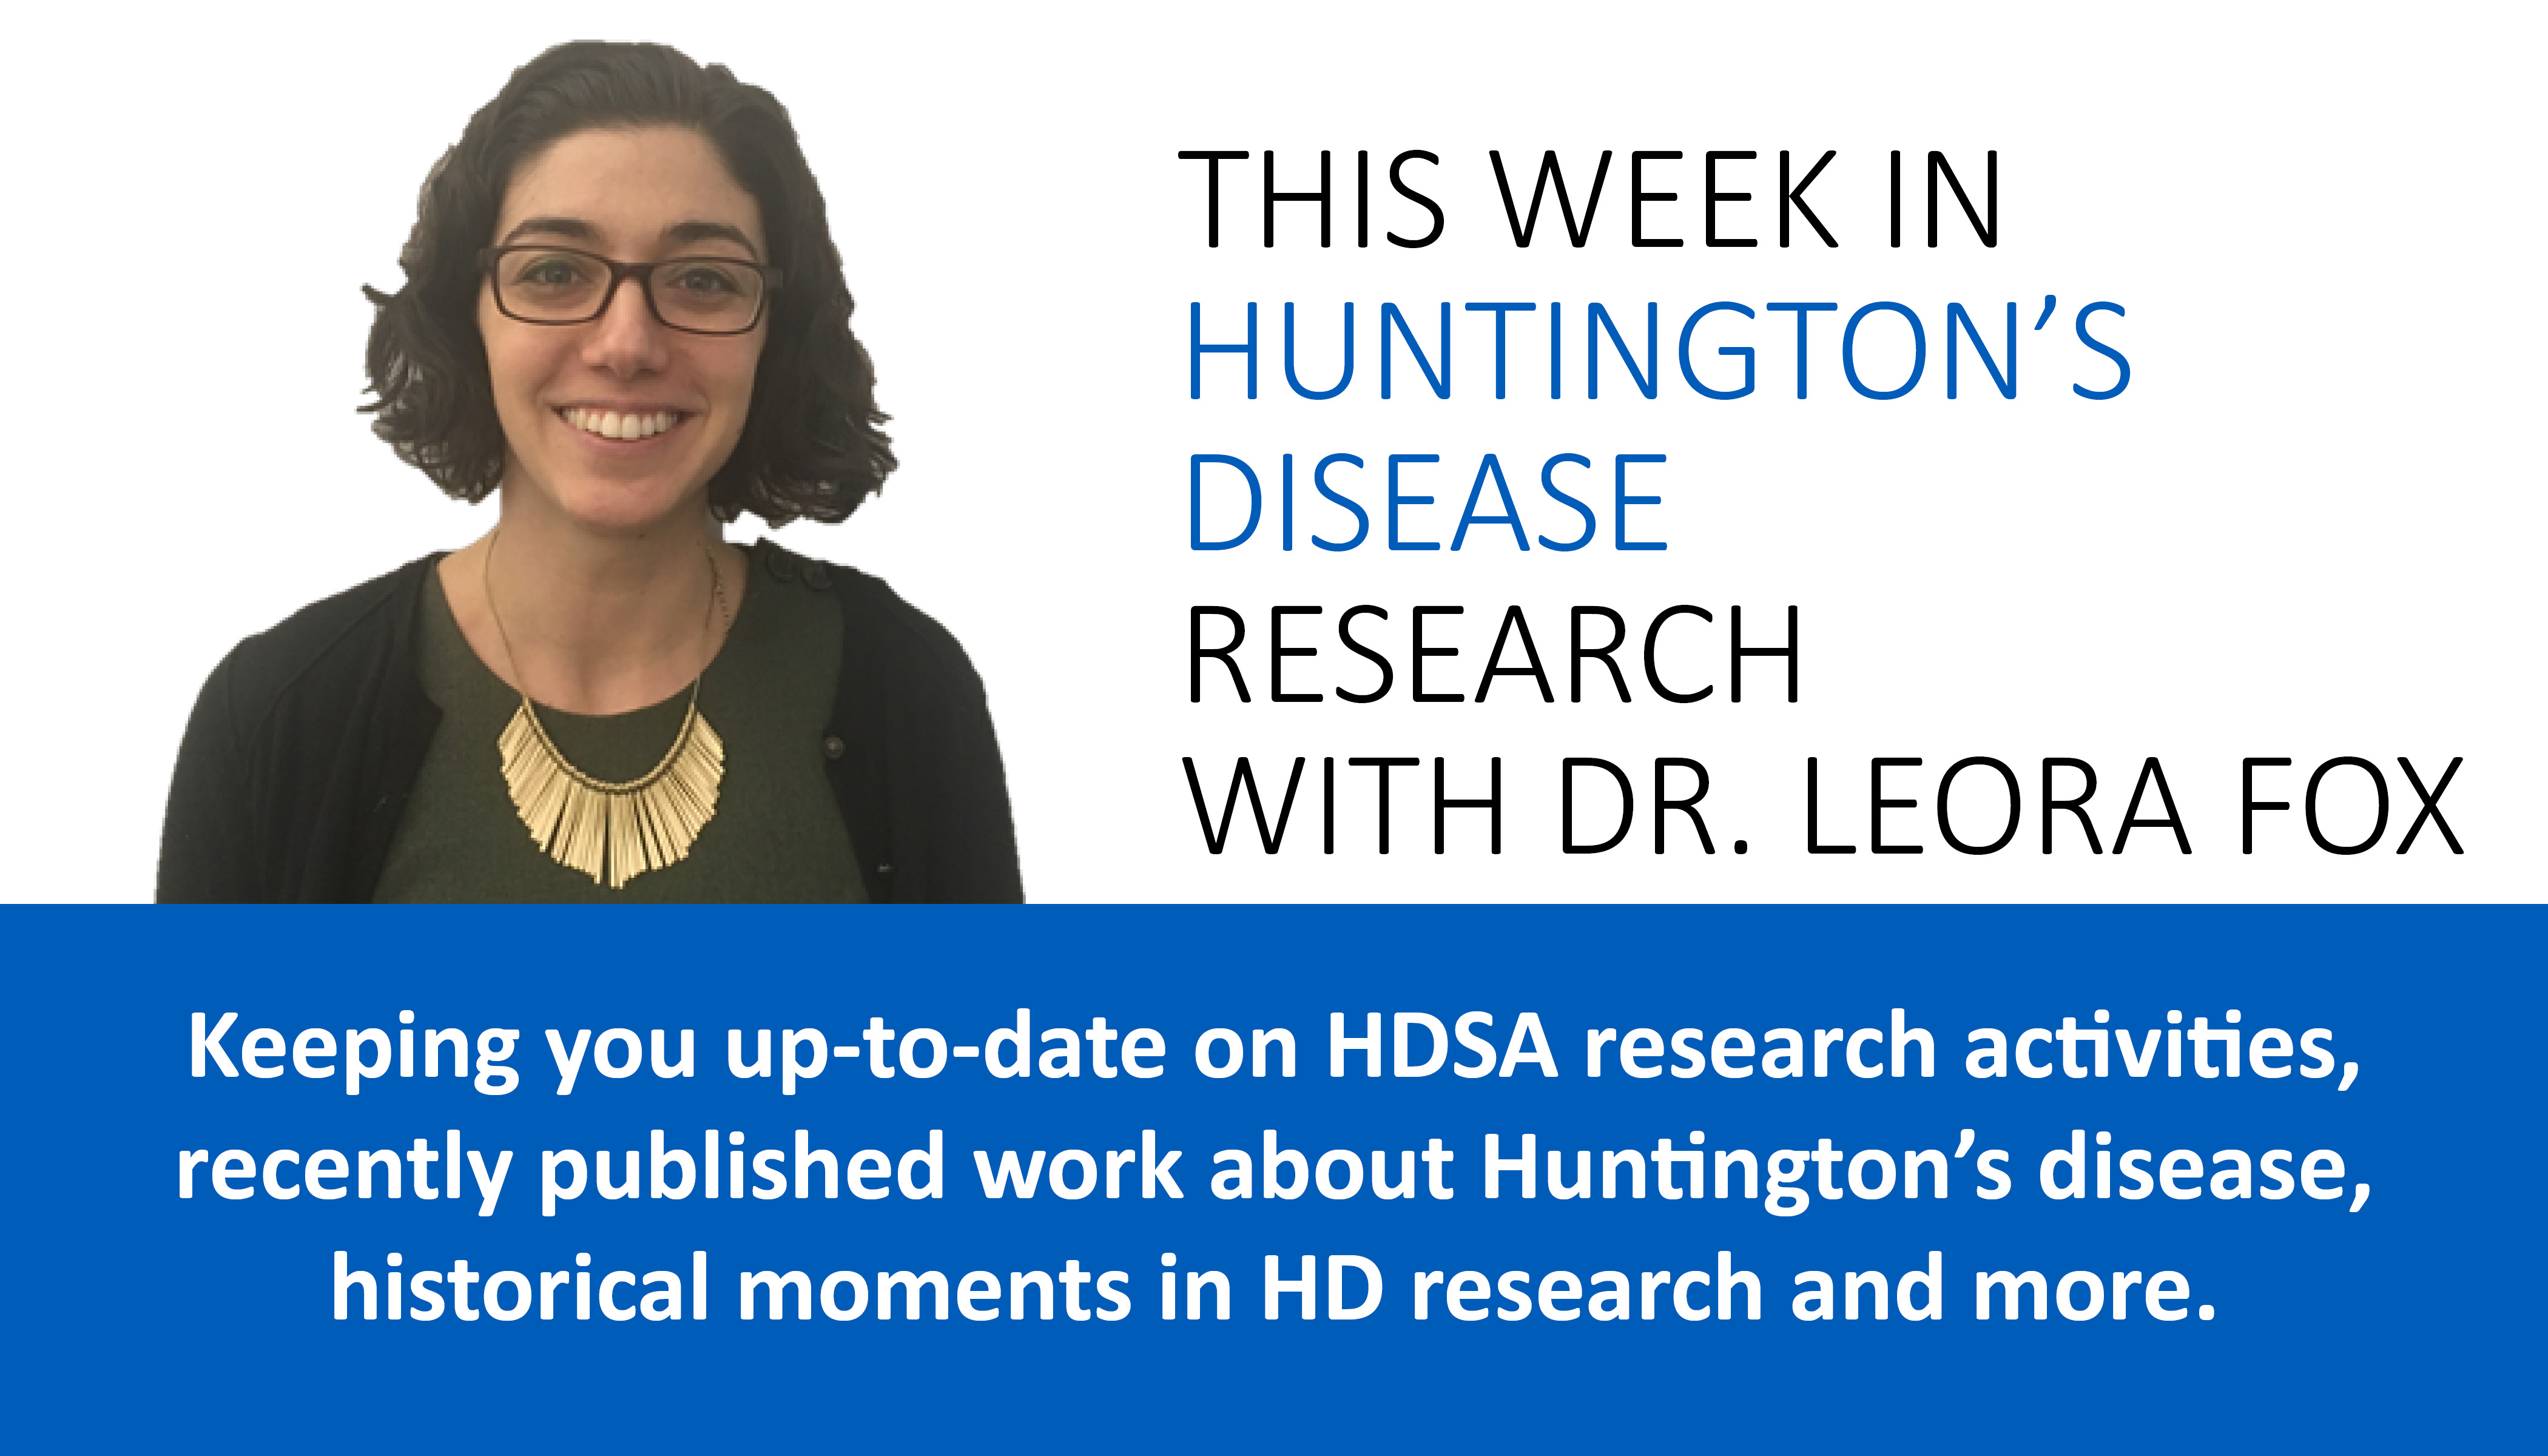 This Week in HD Research